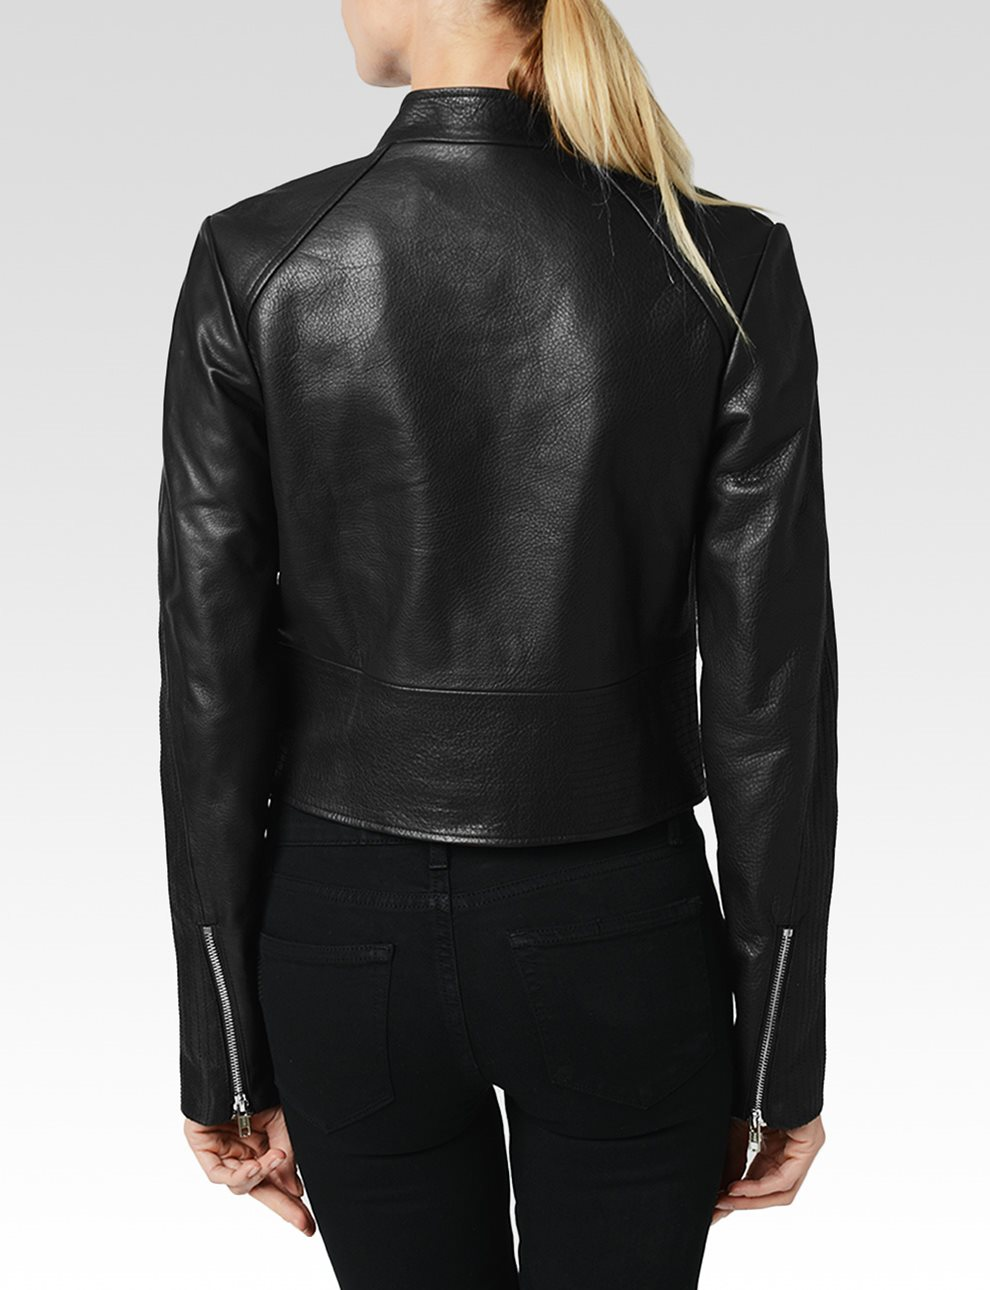 Bevan Jacket - Black Leather | Paige USA